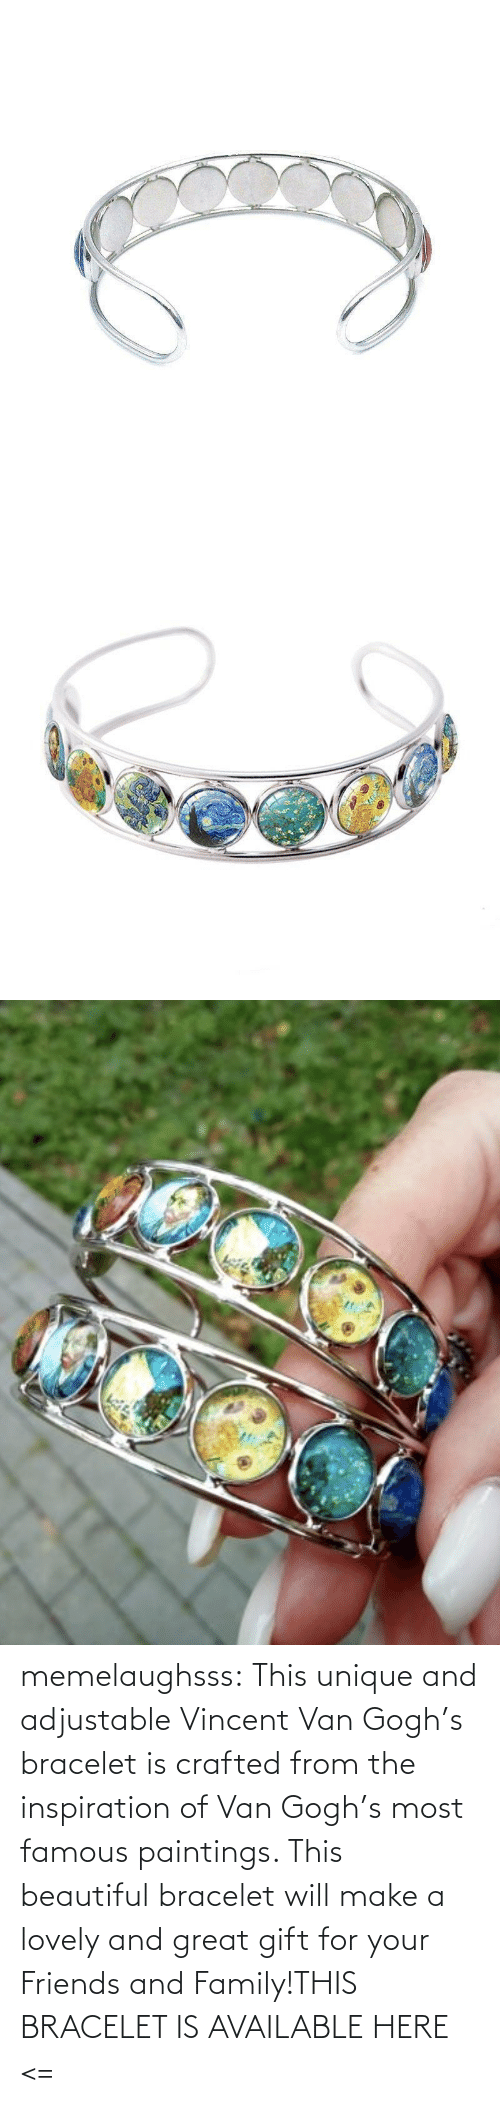 Inspiration: memelaughsss:  This unique and adjustable Vincent Van Gogh's bracelet is crafted from the inspiration of Van Gogh's most famous paintings. This beautiful bracelet will make a lovely and great gift for your Friends and Family!THIS BRACELET IS AVAILABLE HERE <=